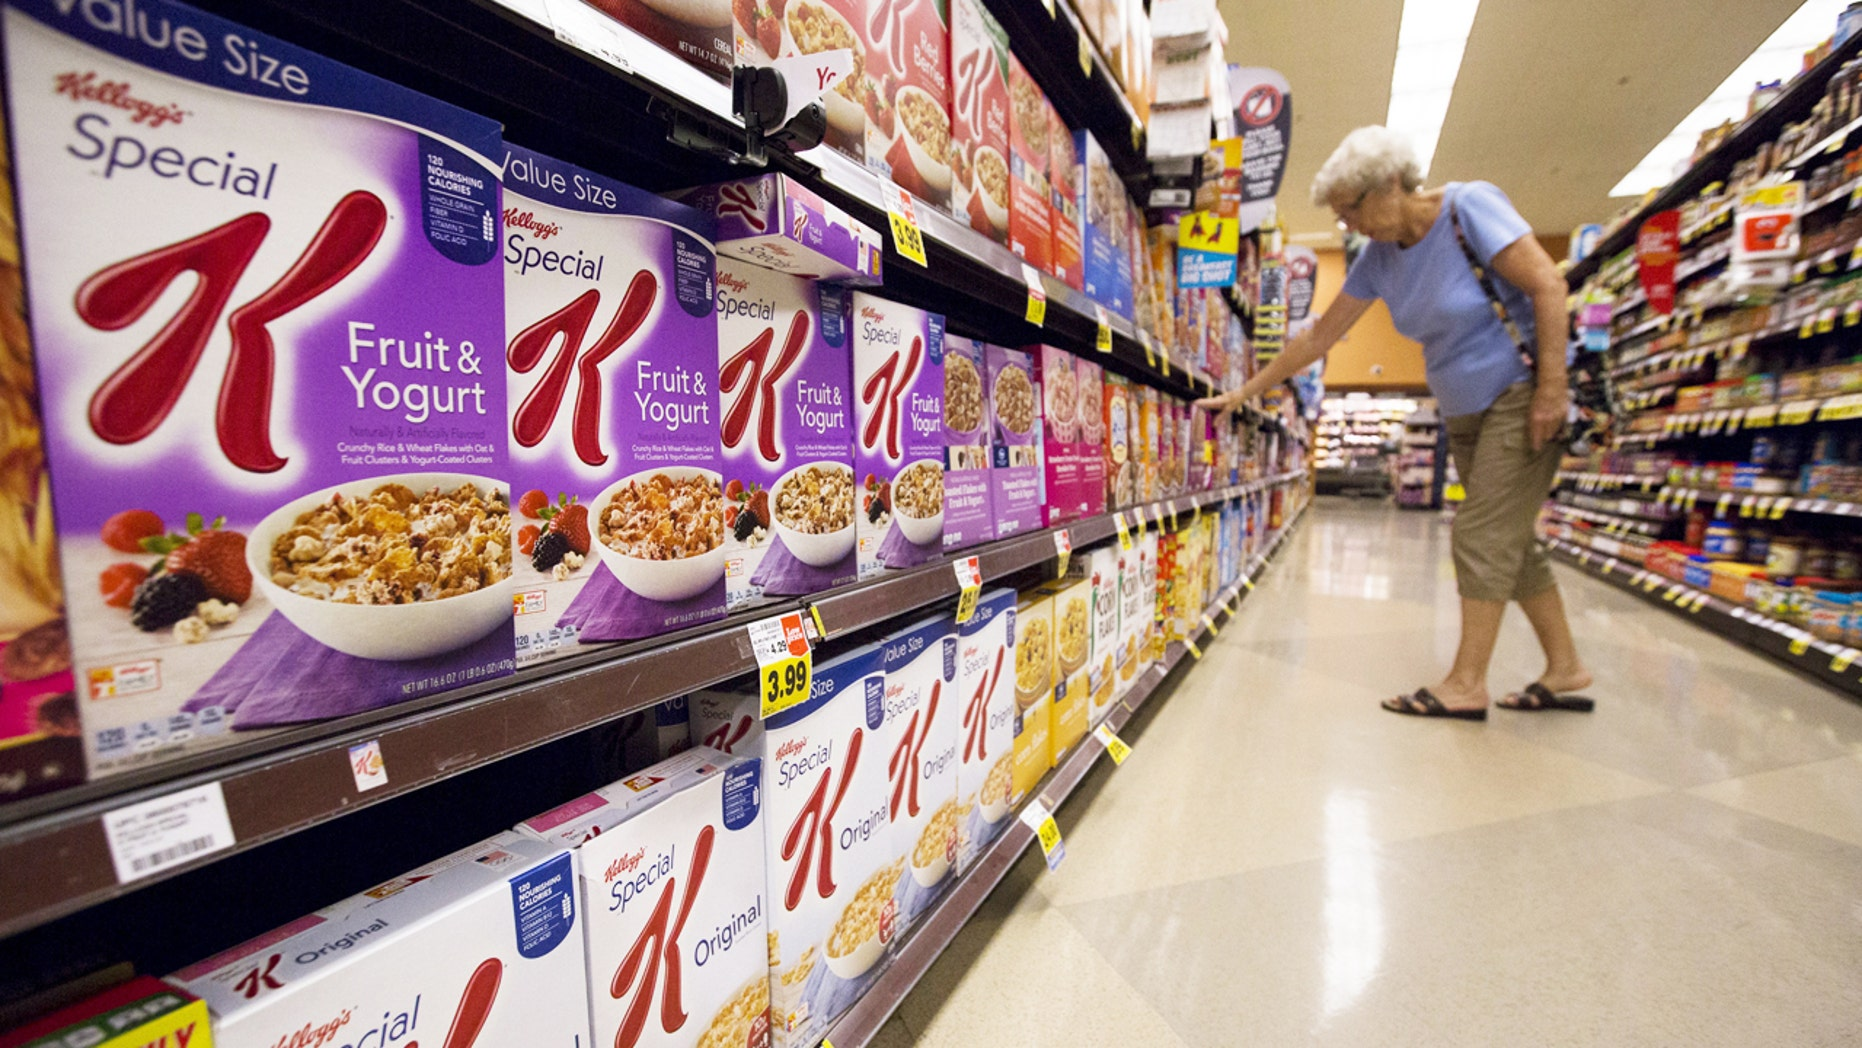 Various types of Kellogg's cereals are pictured at a Ralphs grocery store in Pasadena, California August 3, 2015. REUTERS/Mario Anzuoni - RTX1MWWG